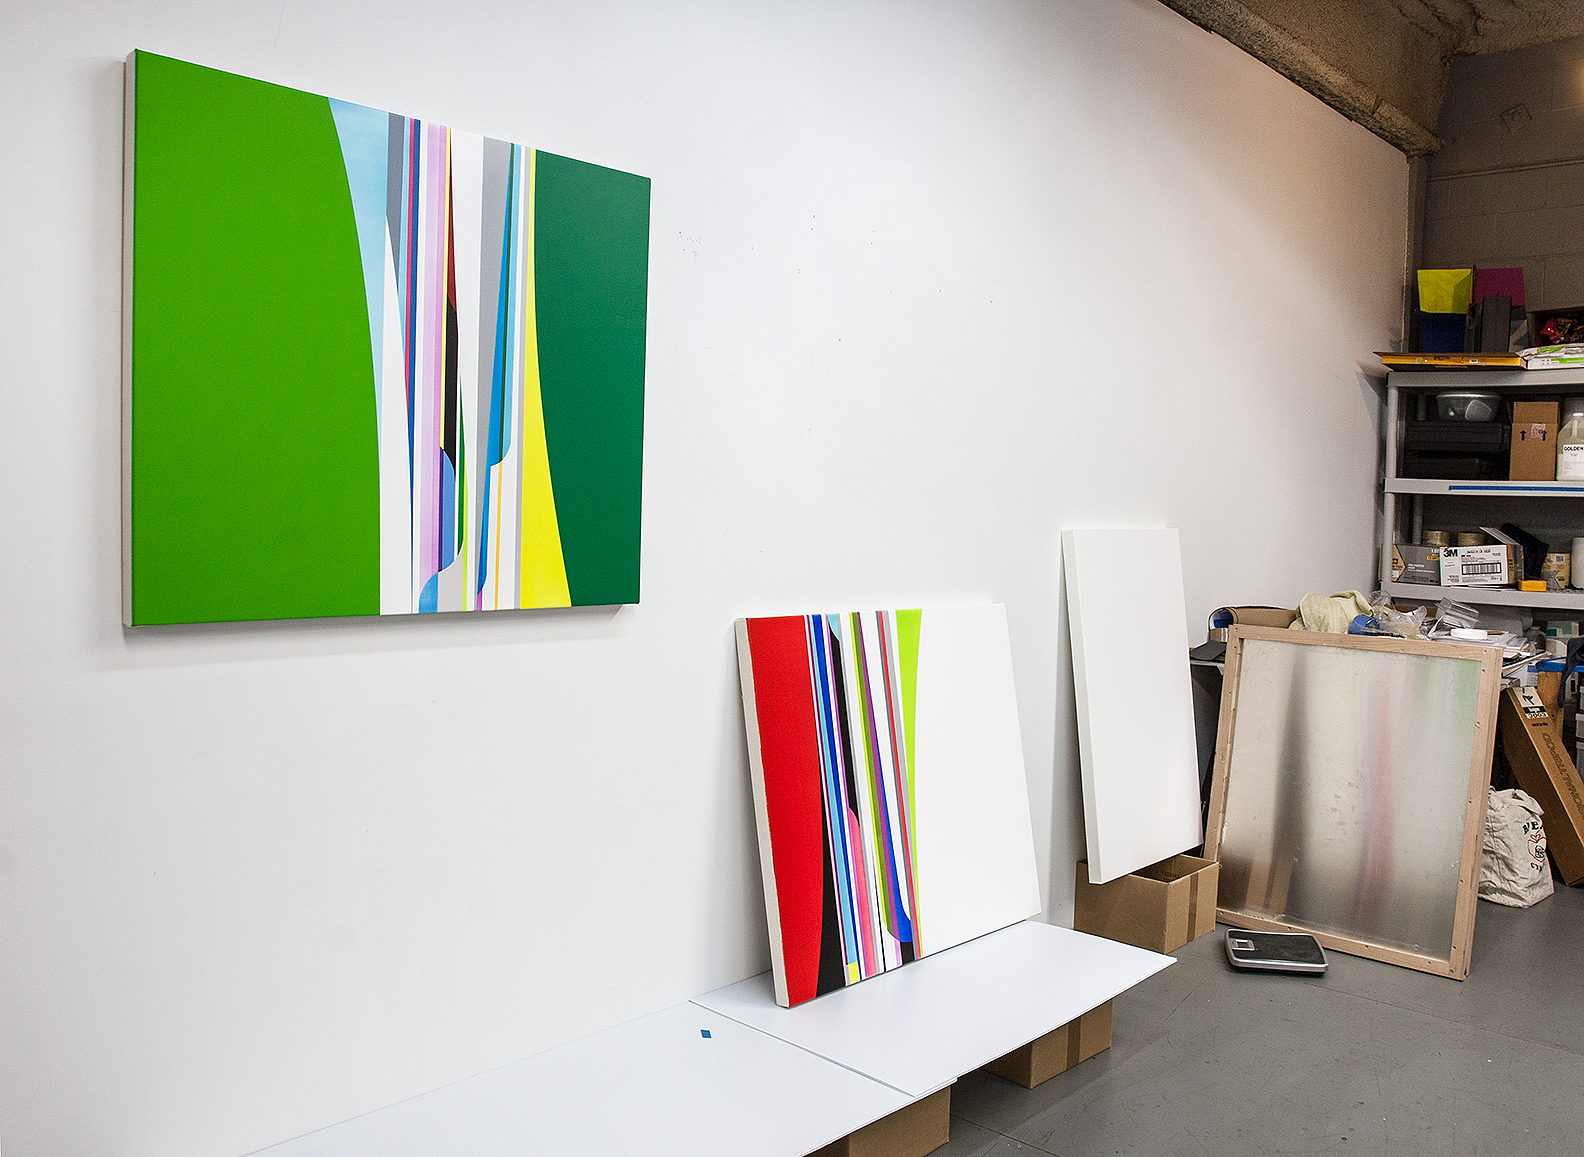 DION JOHNSON, Studio 2015 with Meadow and Dazzle